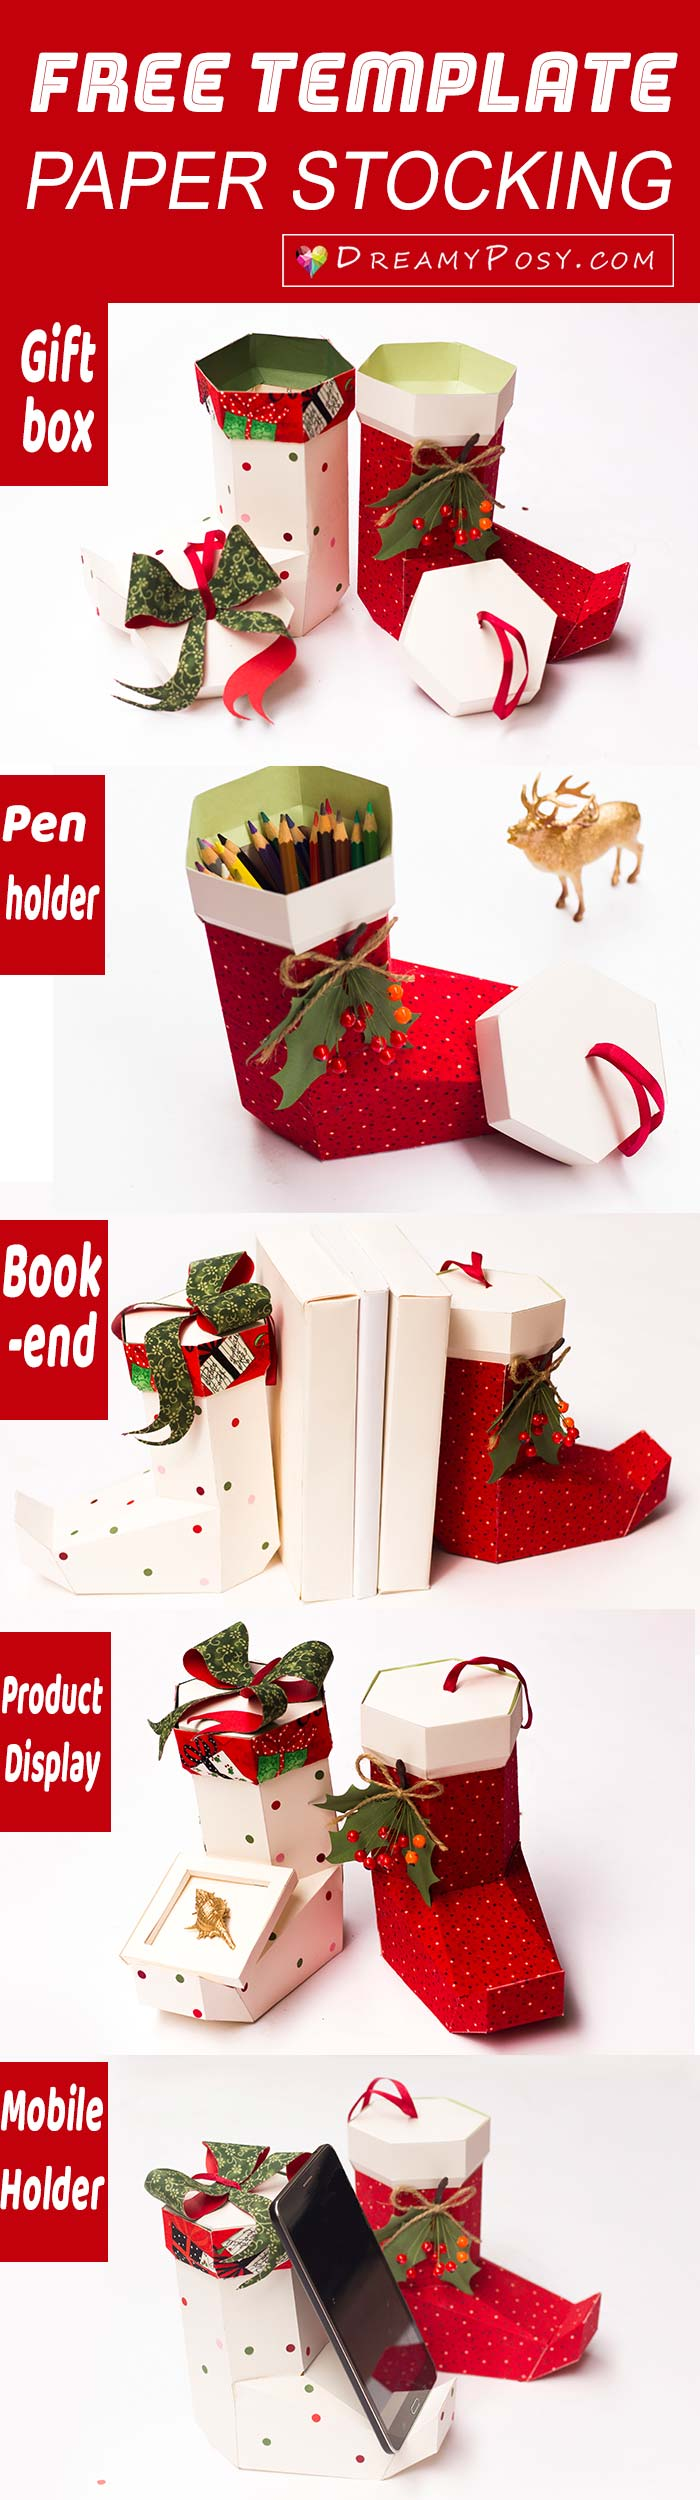 Paper Christmas stocking, free template and tutorial #Christmas stocking #freebies #freeprintable